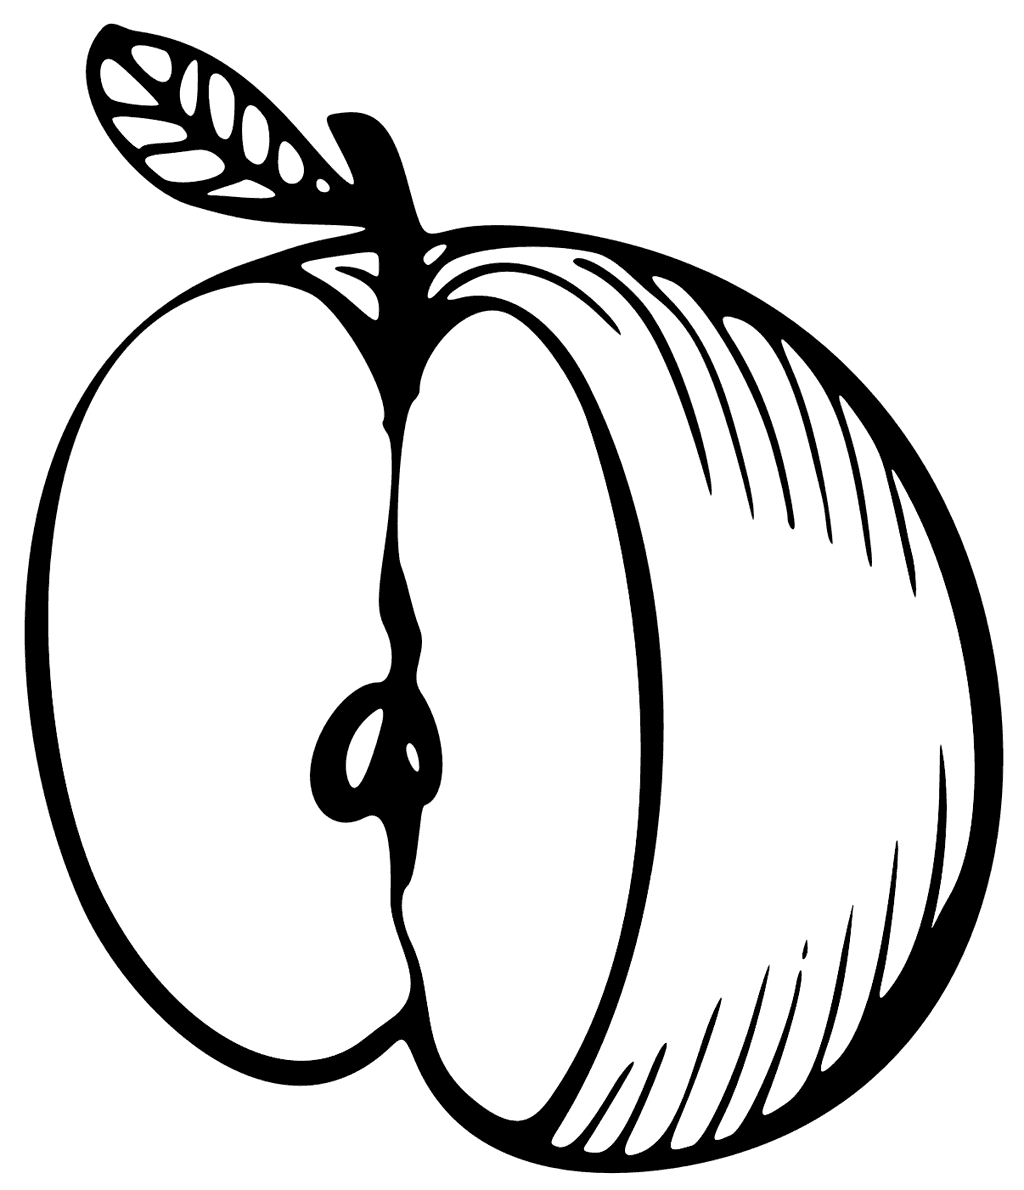 Cut Apple Coloring Page for Kids